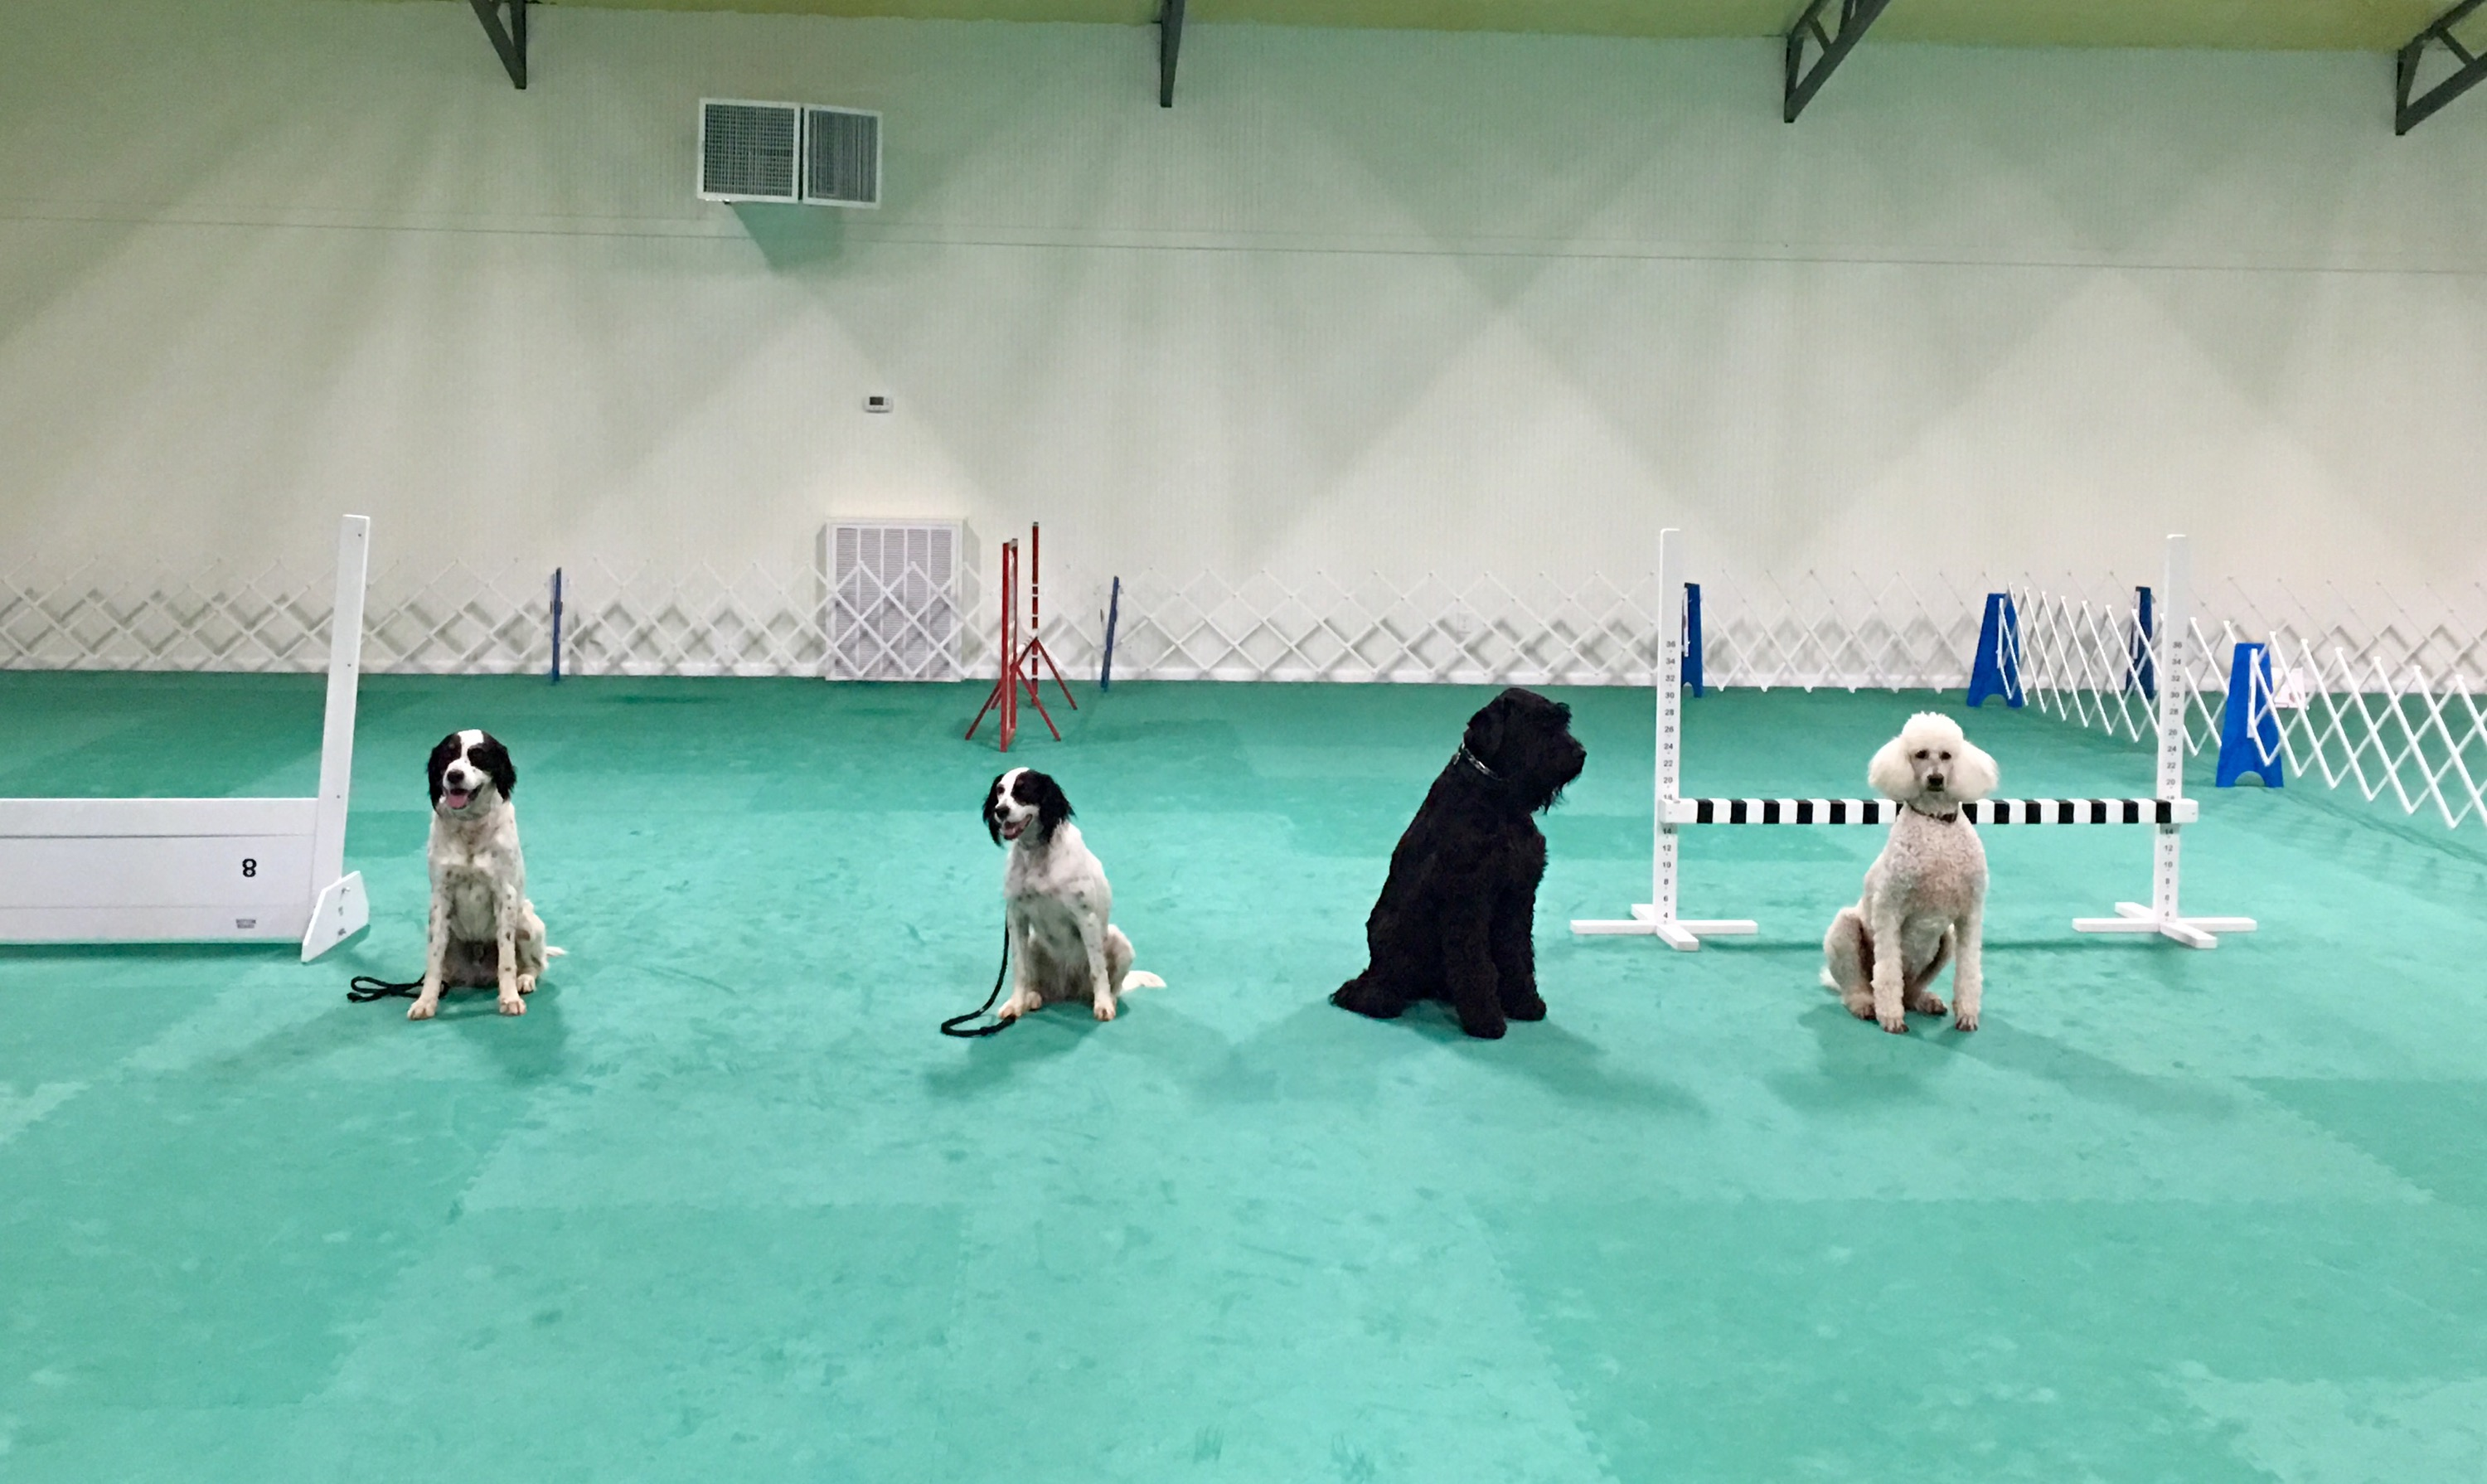 Greatmats Cushioned Dog Training Floor Adds Safety to Dream